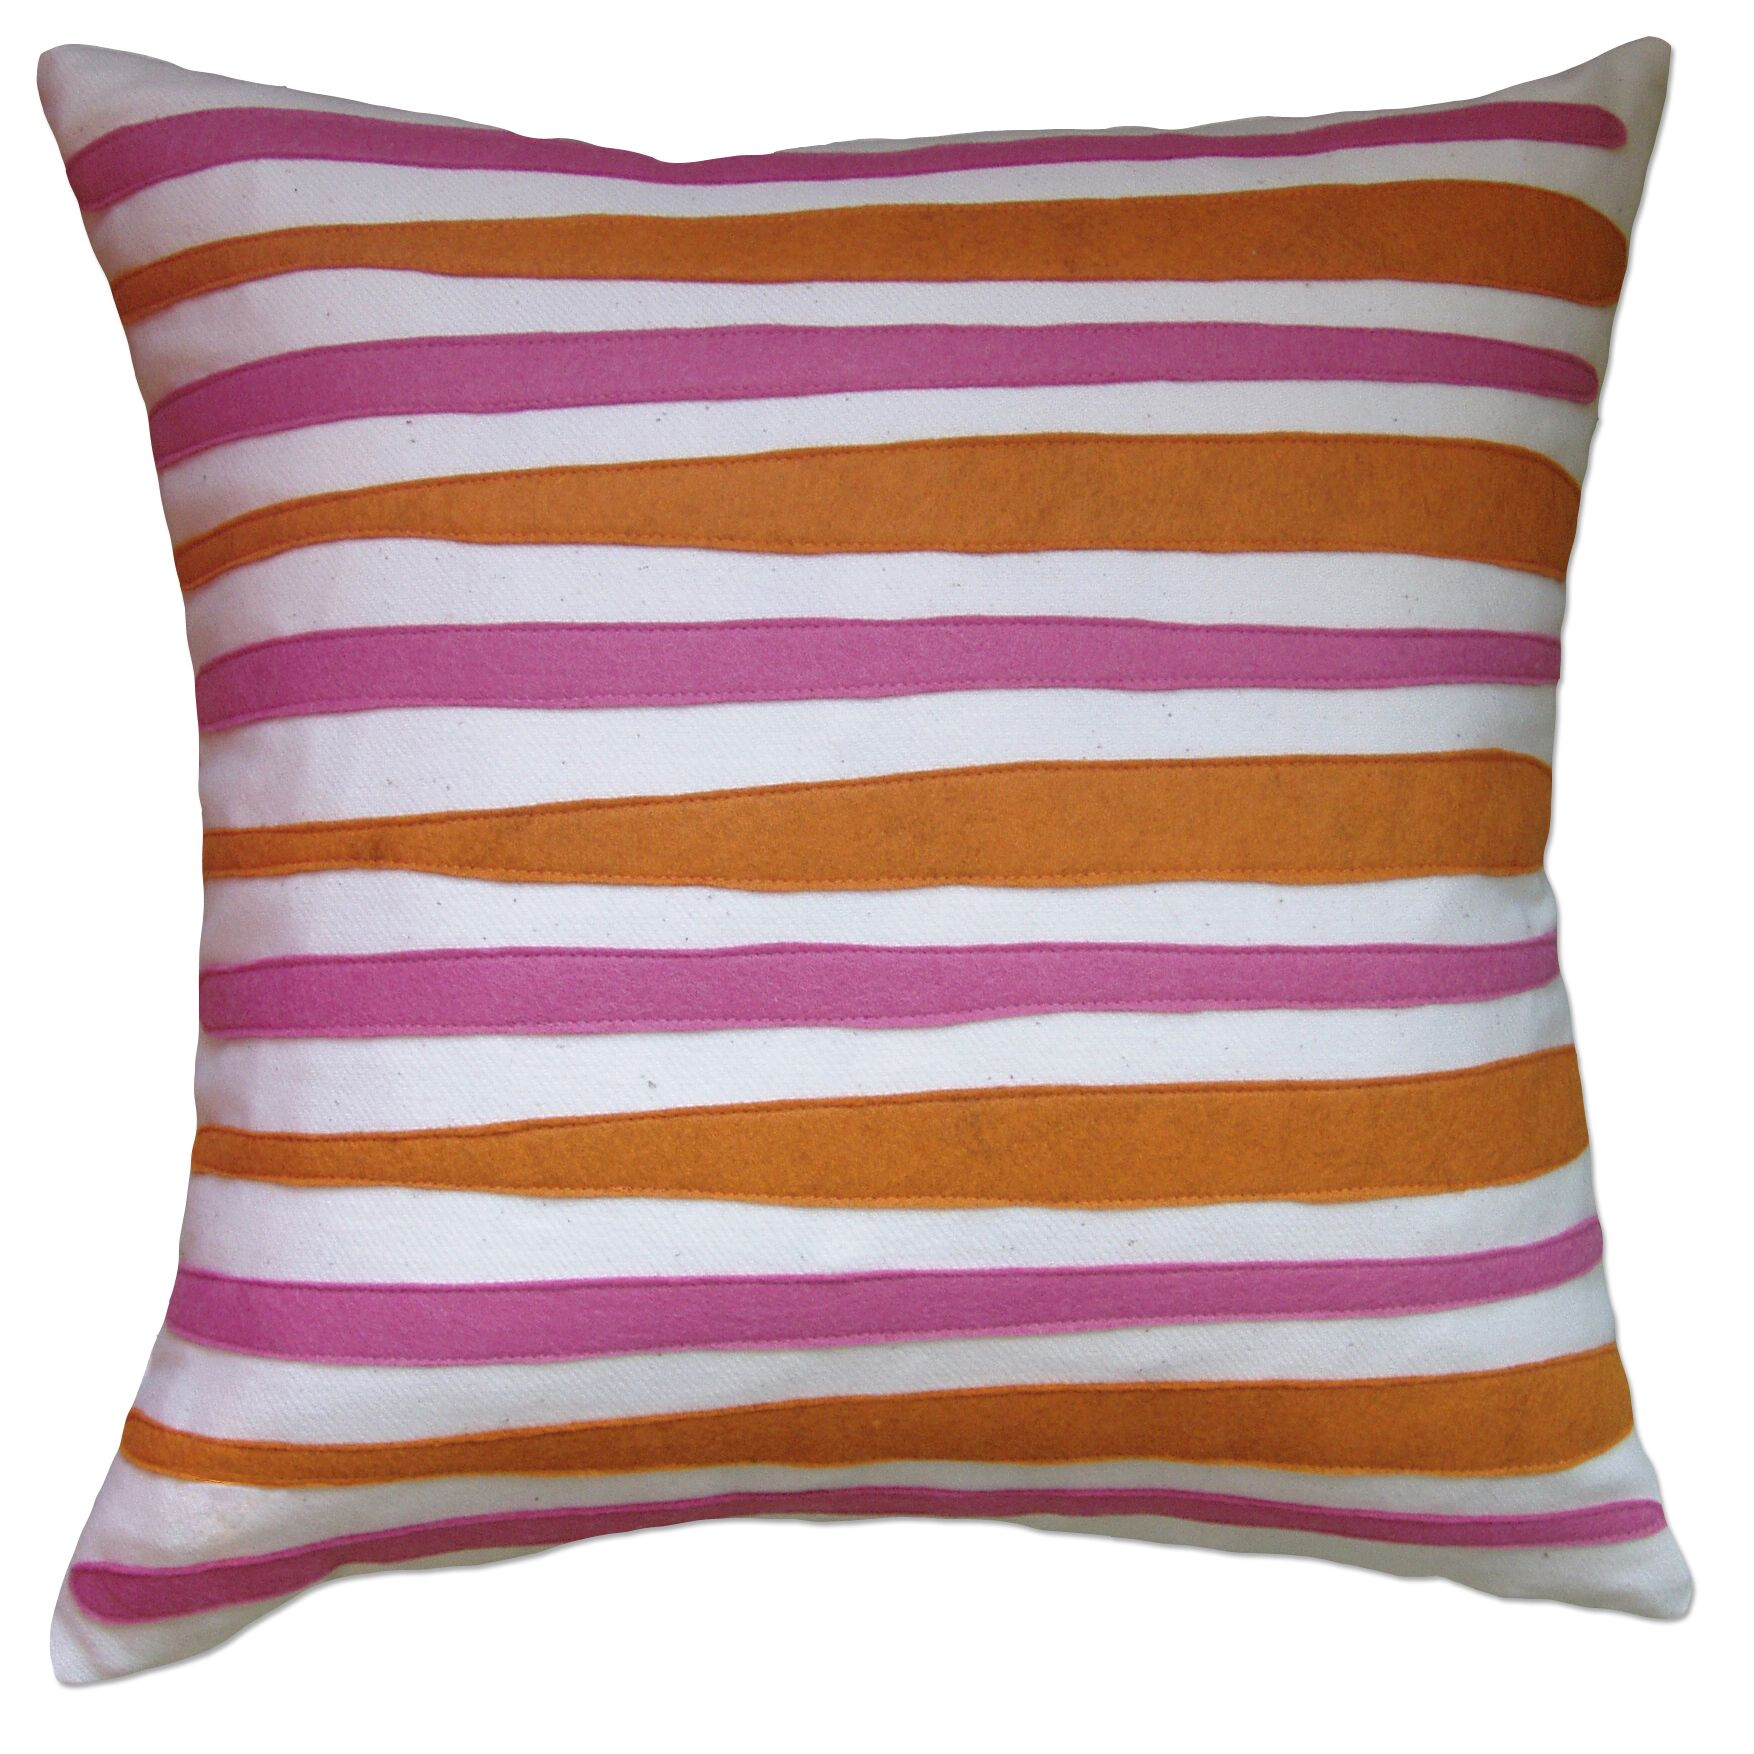 Moris Linen Throw Pillow Color: Off-White Flannel Fabric in Spice/Rose